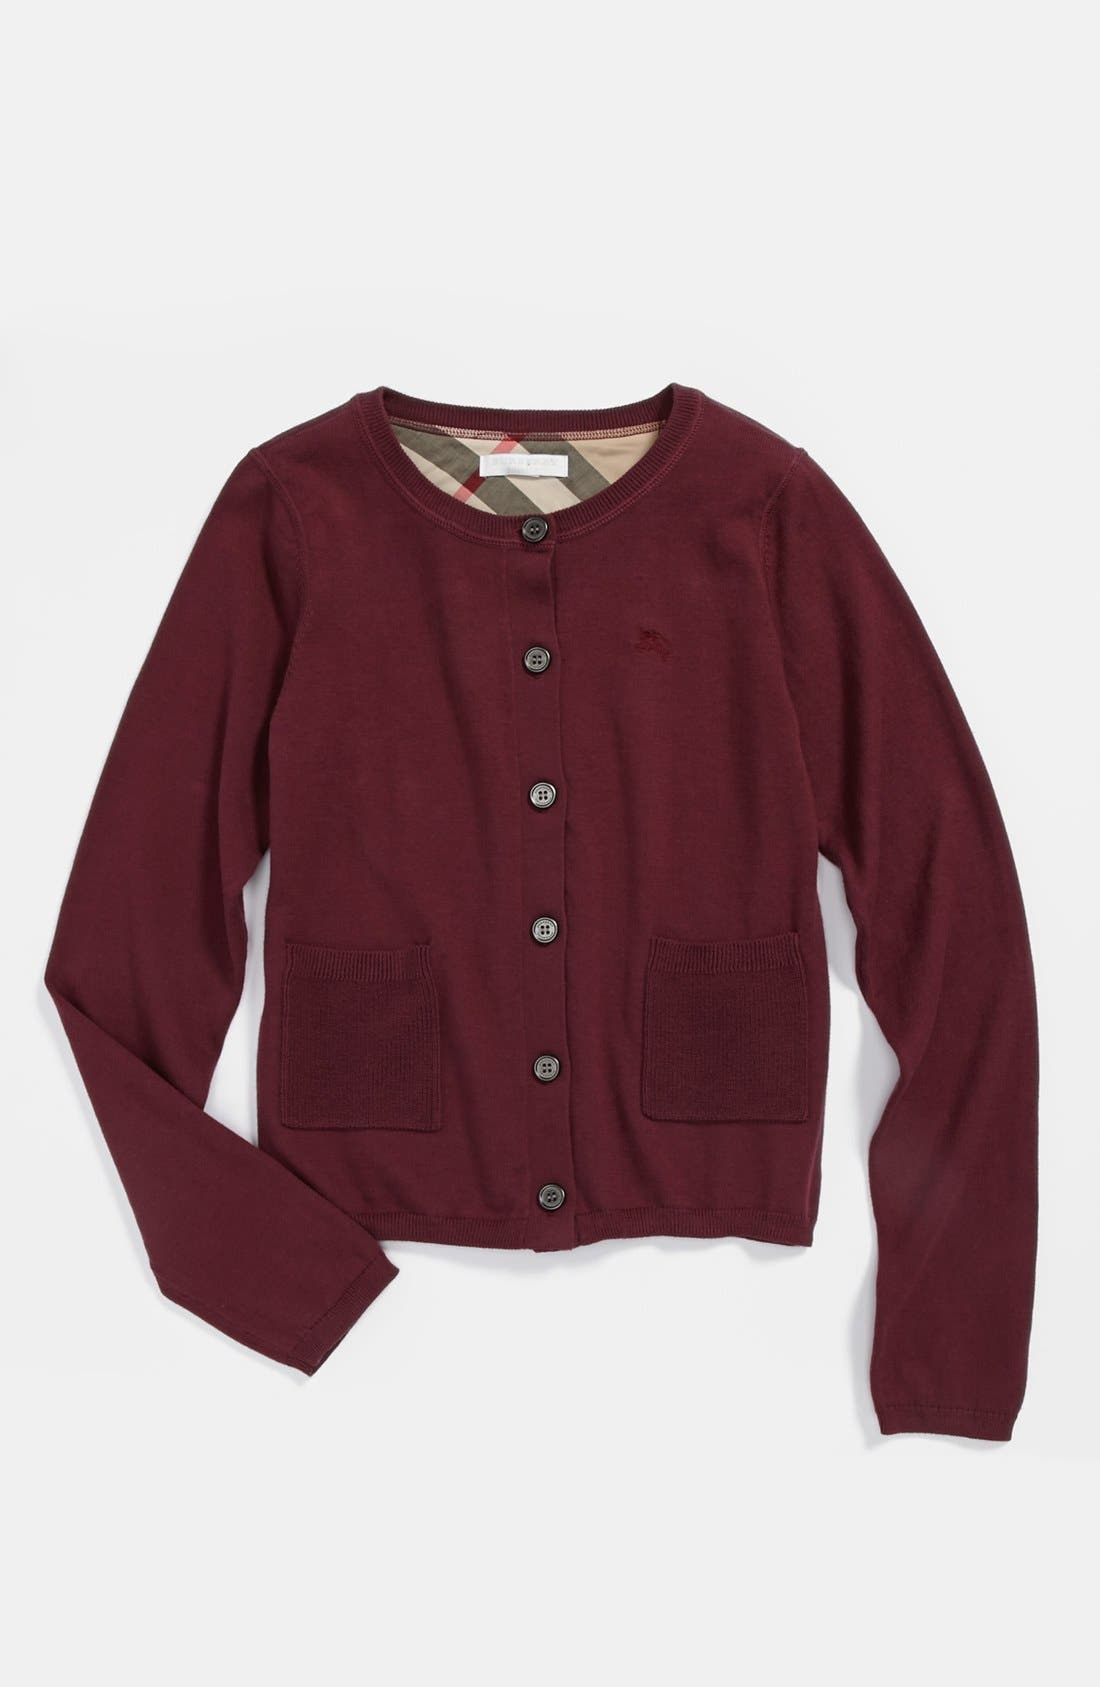 Main Image - Burberry 'Kiki' Cardigan (Toddler Girls, Little Girls & Big Girls)